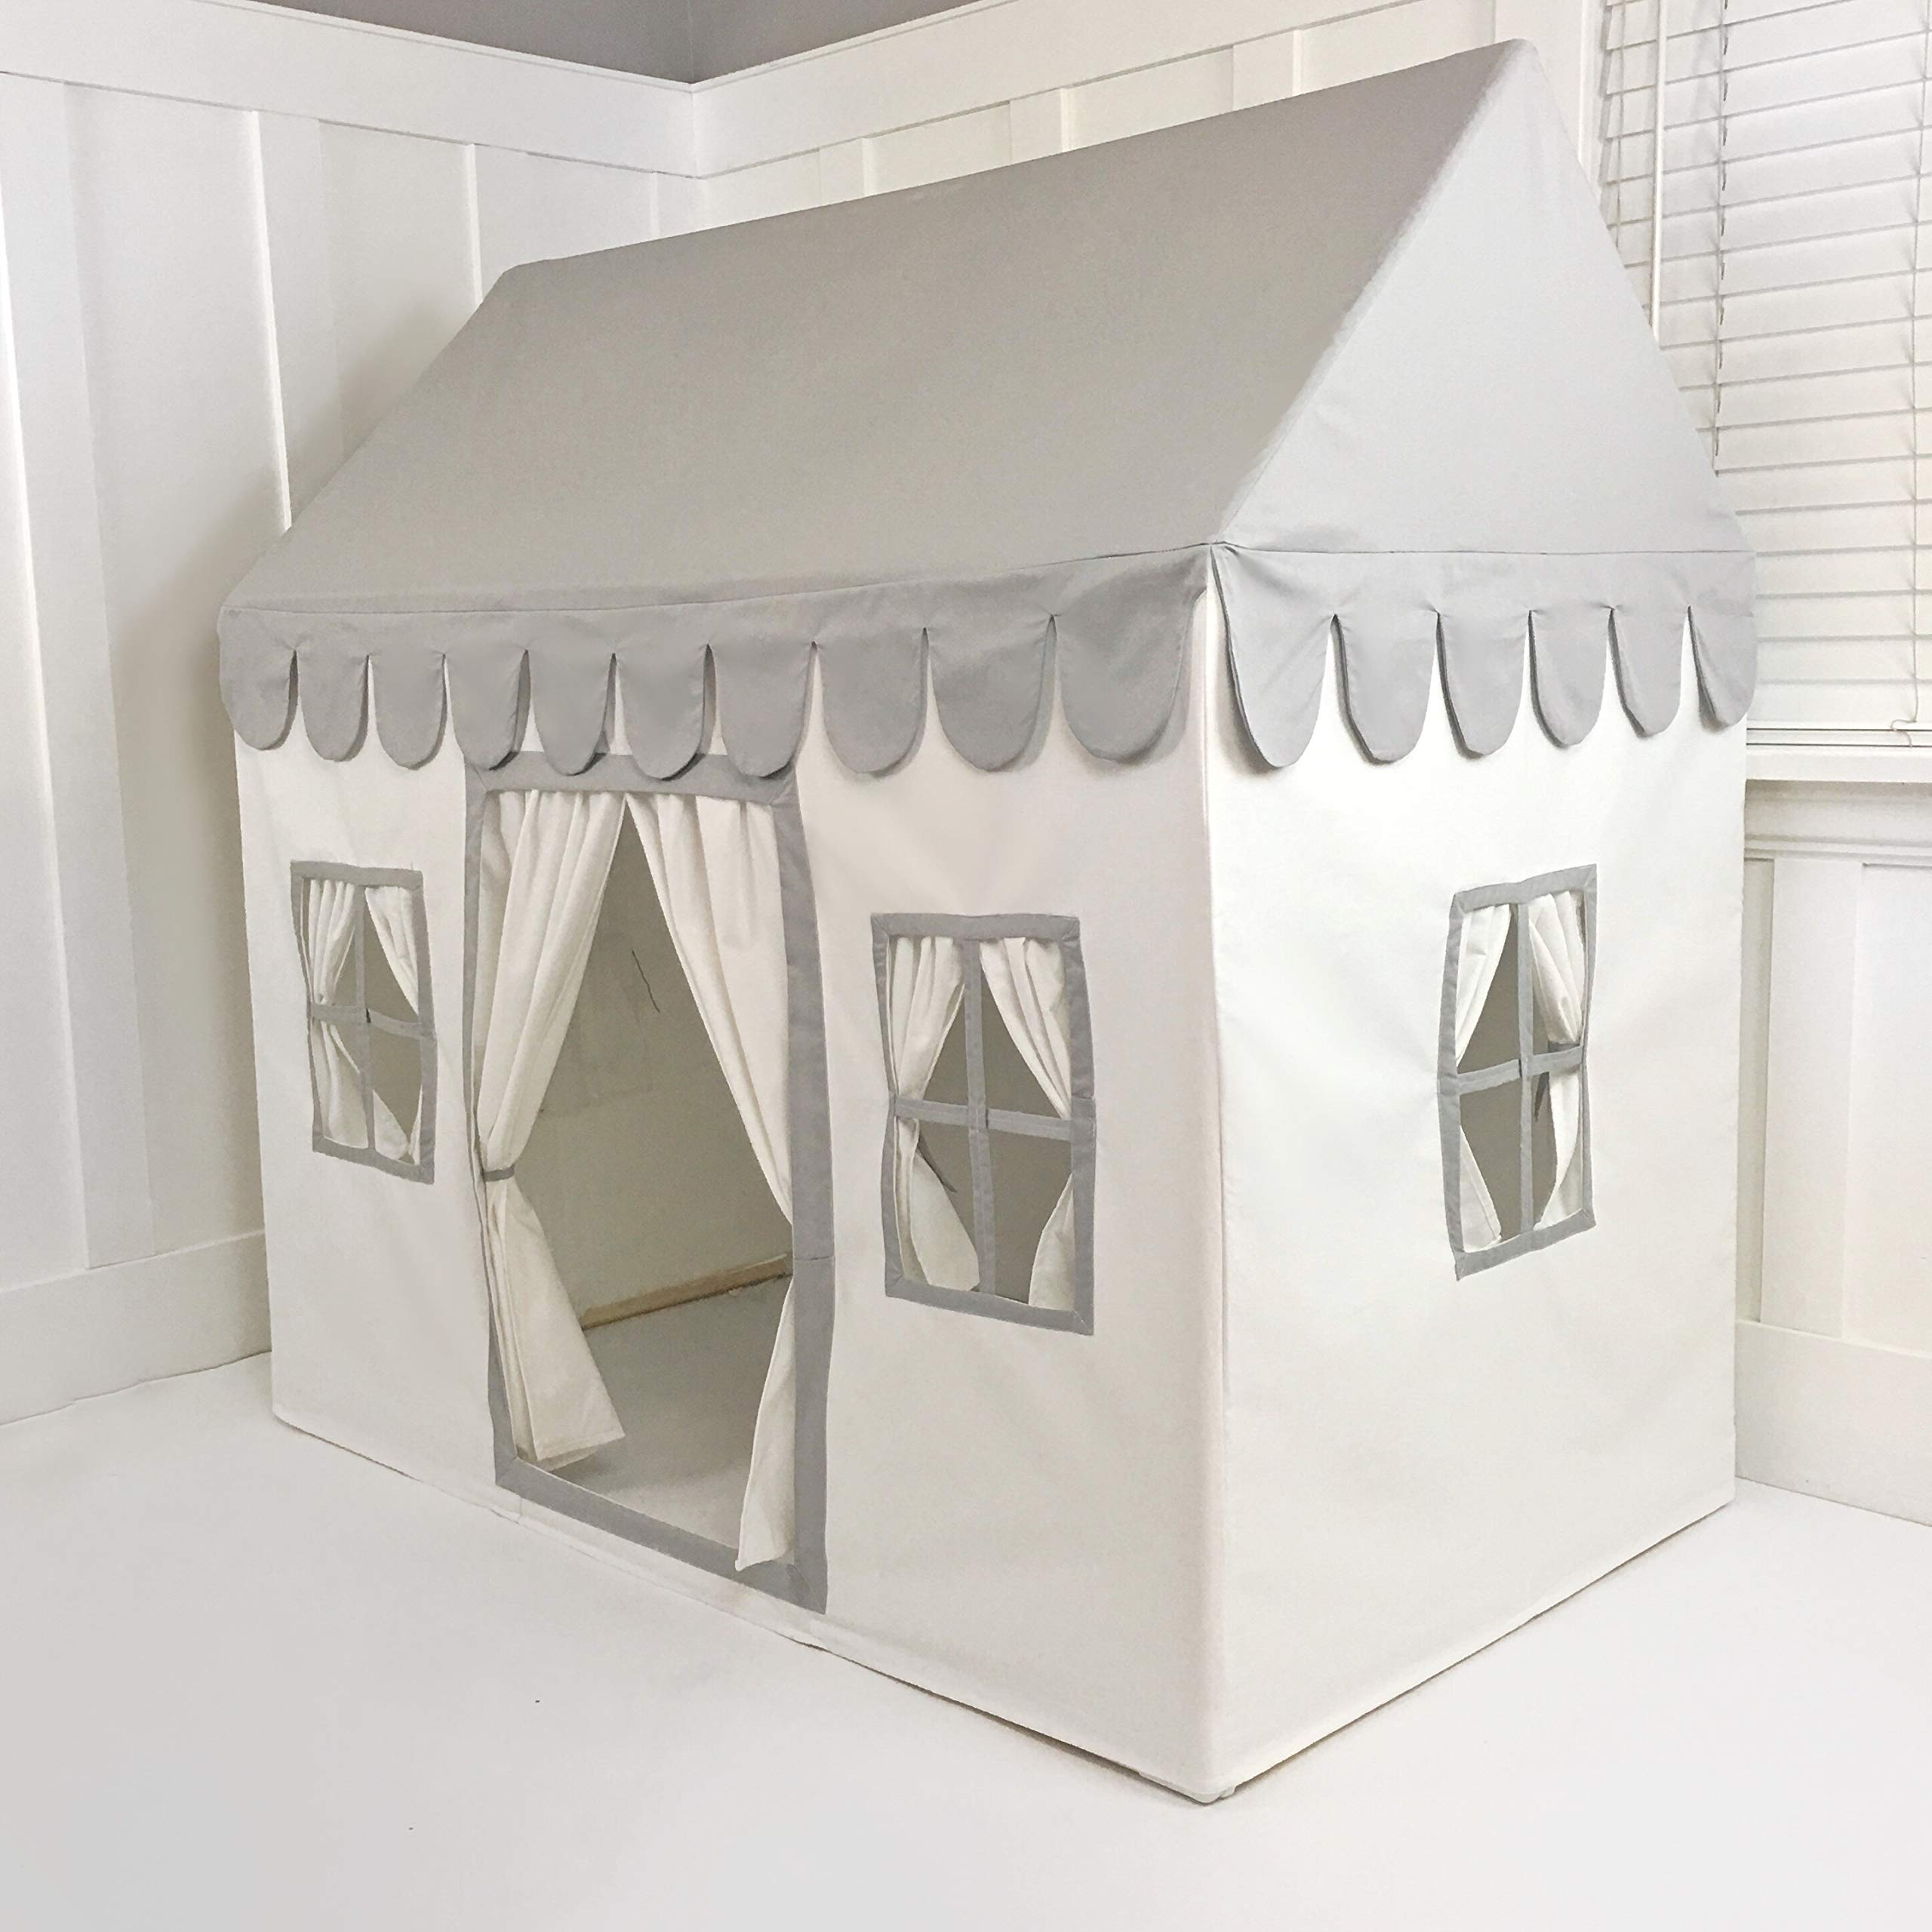 Domestic Objects Childrens Playhouse. Handmade Premum Quality (Grey & White)